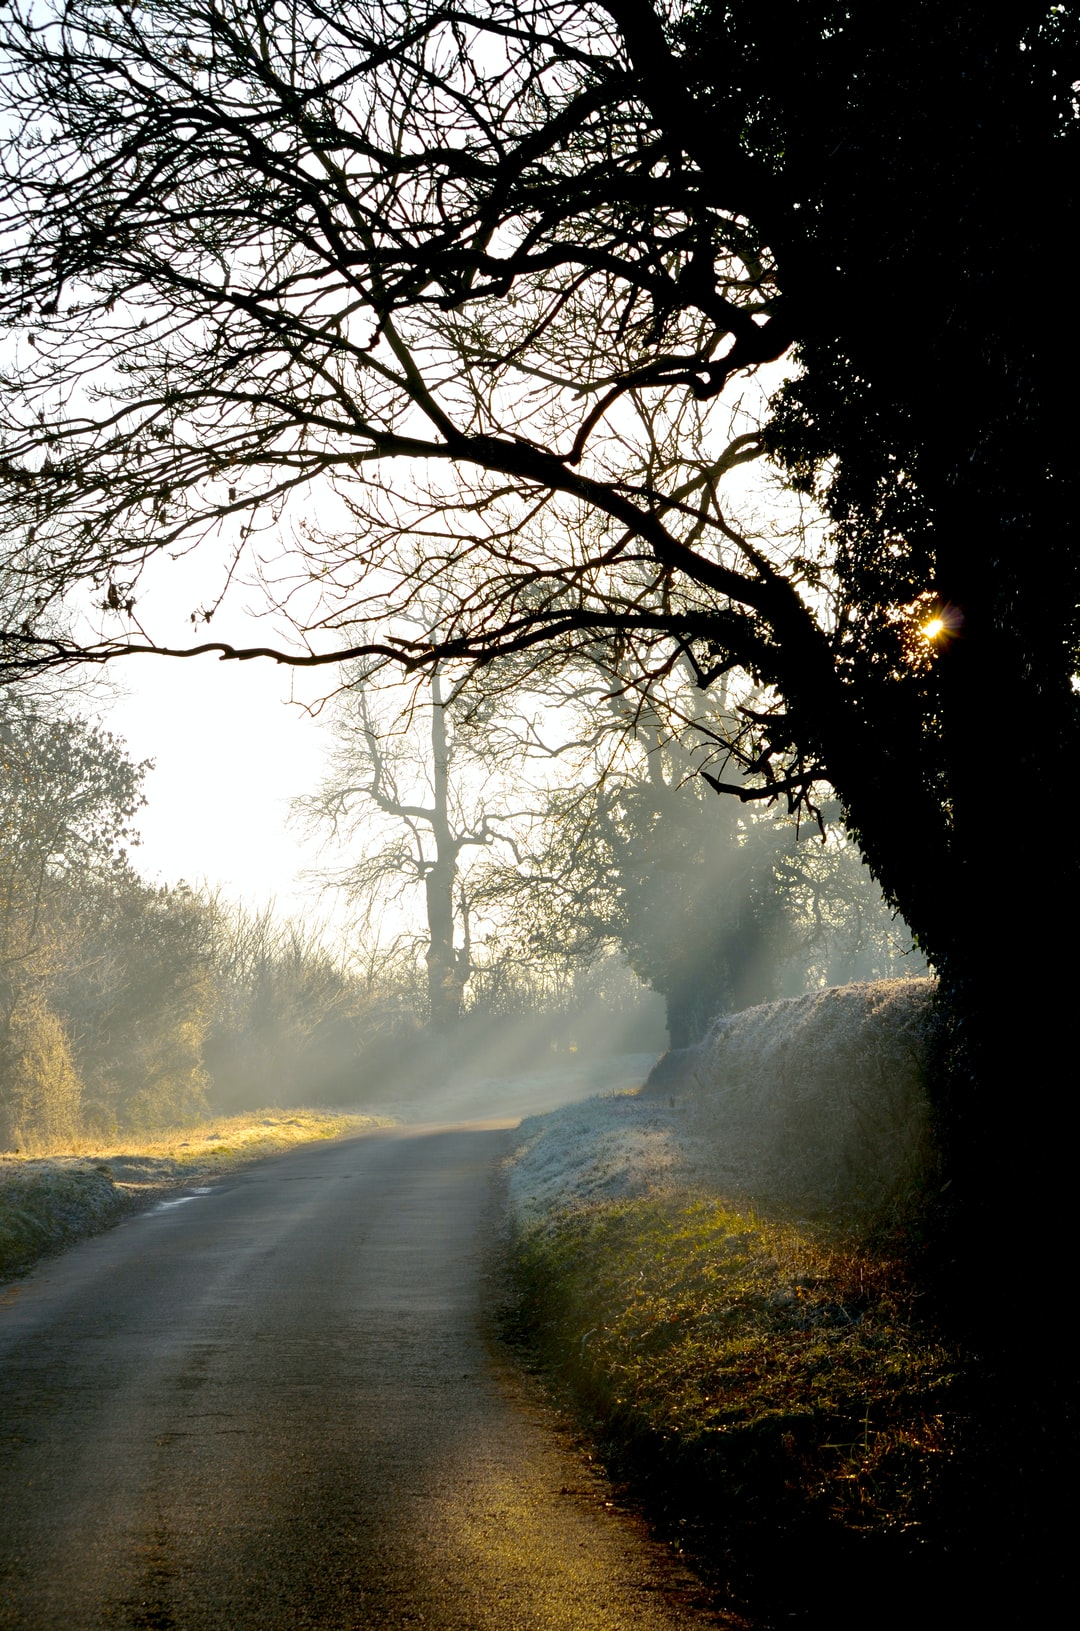 As the frozen fog lifted one morning the sunlight gave us some charming views in Northamptonshire.